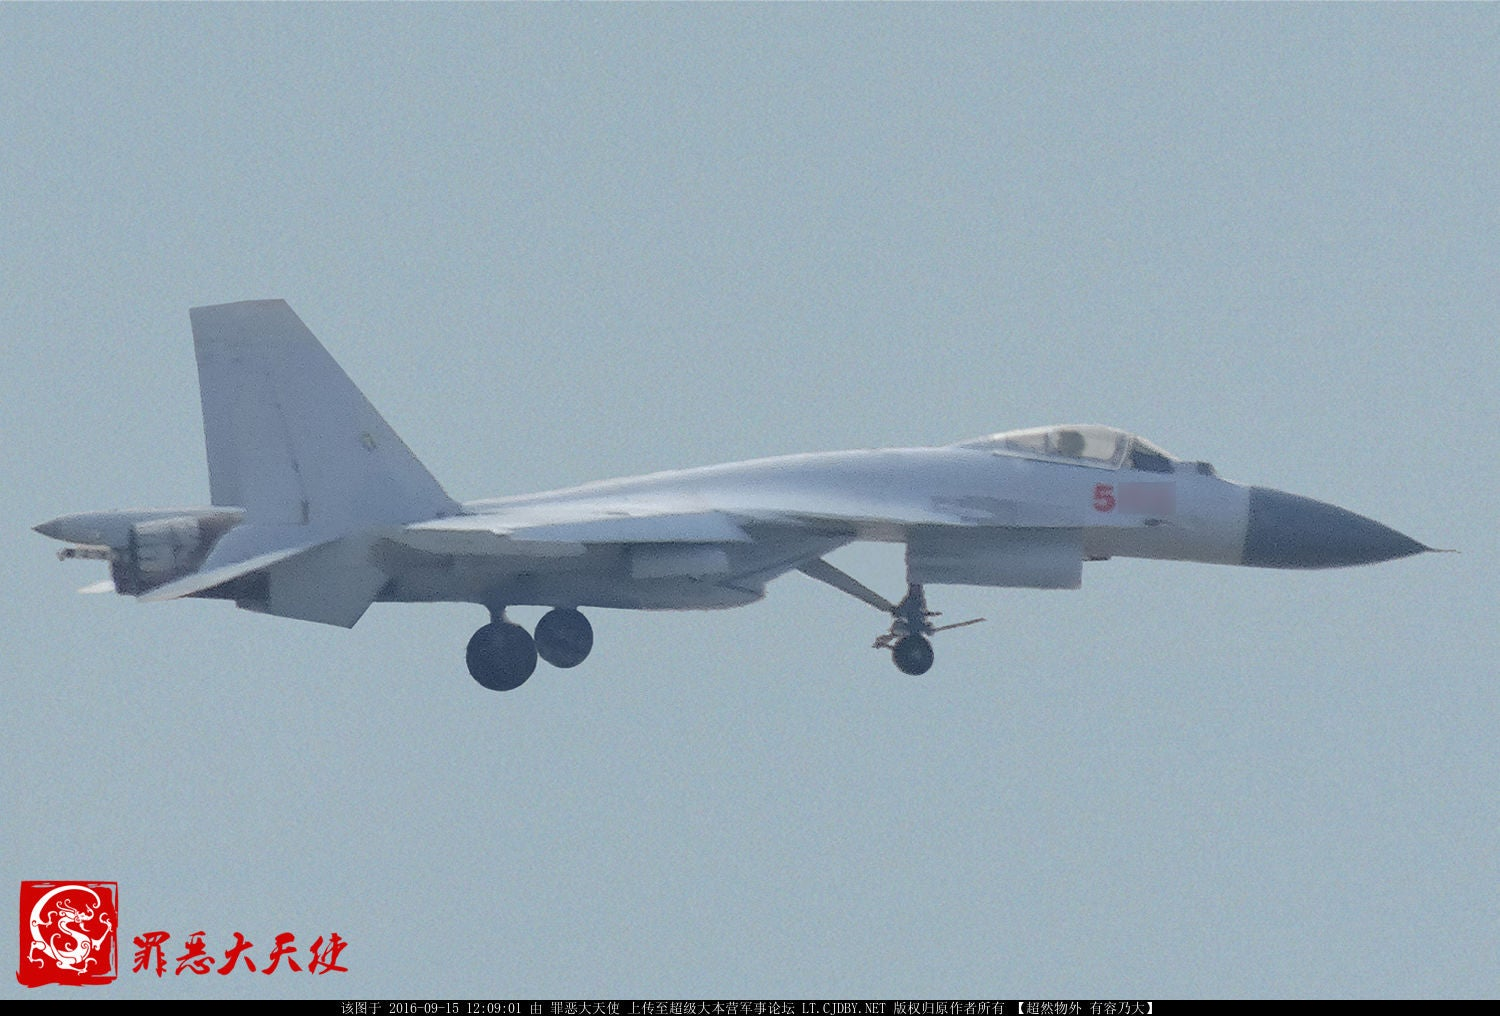 The Next Generation of China's Carrier-Borne Fighter, The Flying Shark, Takes to the Skies